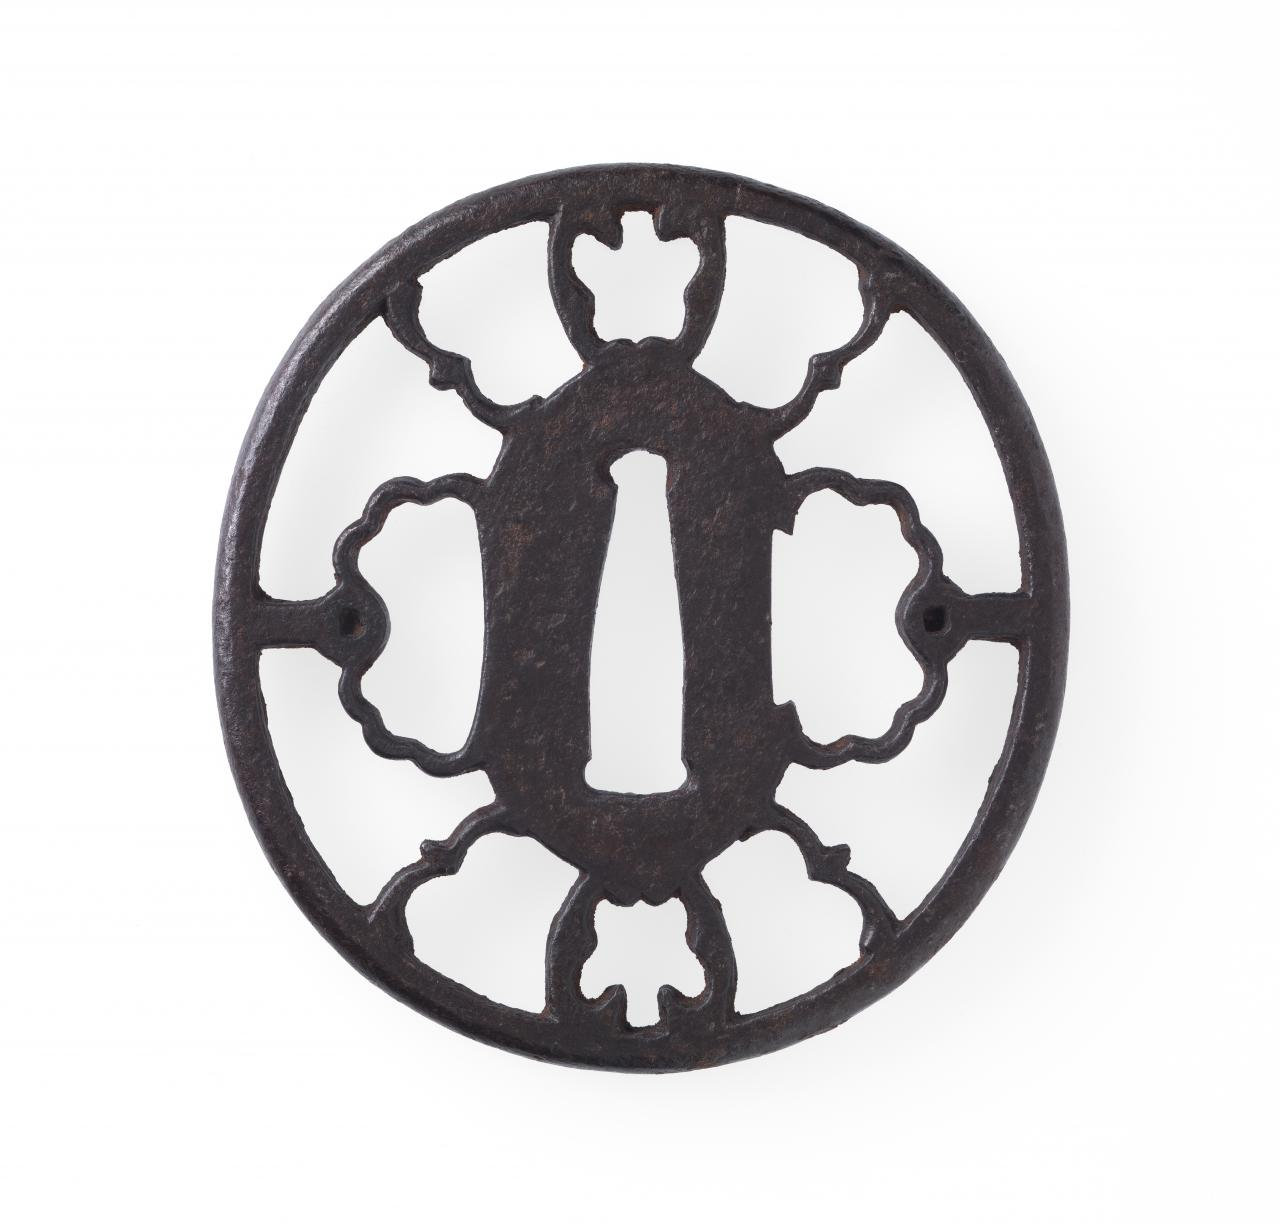 Sword guard with flying plover design